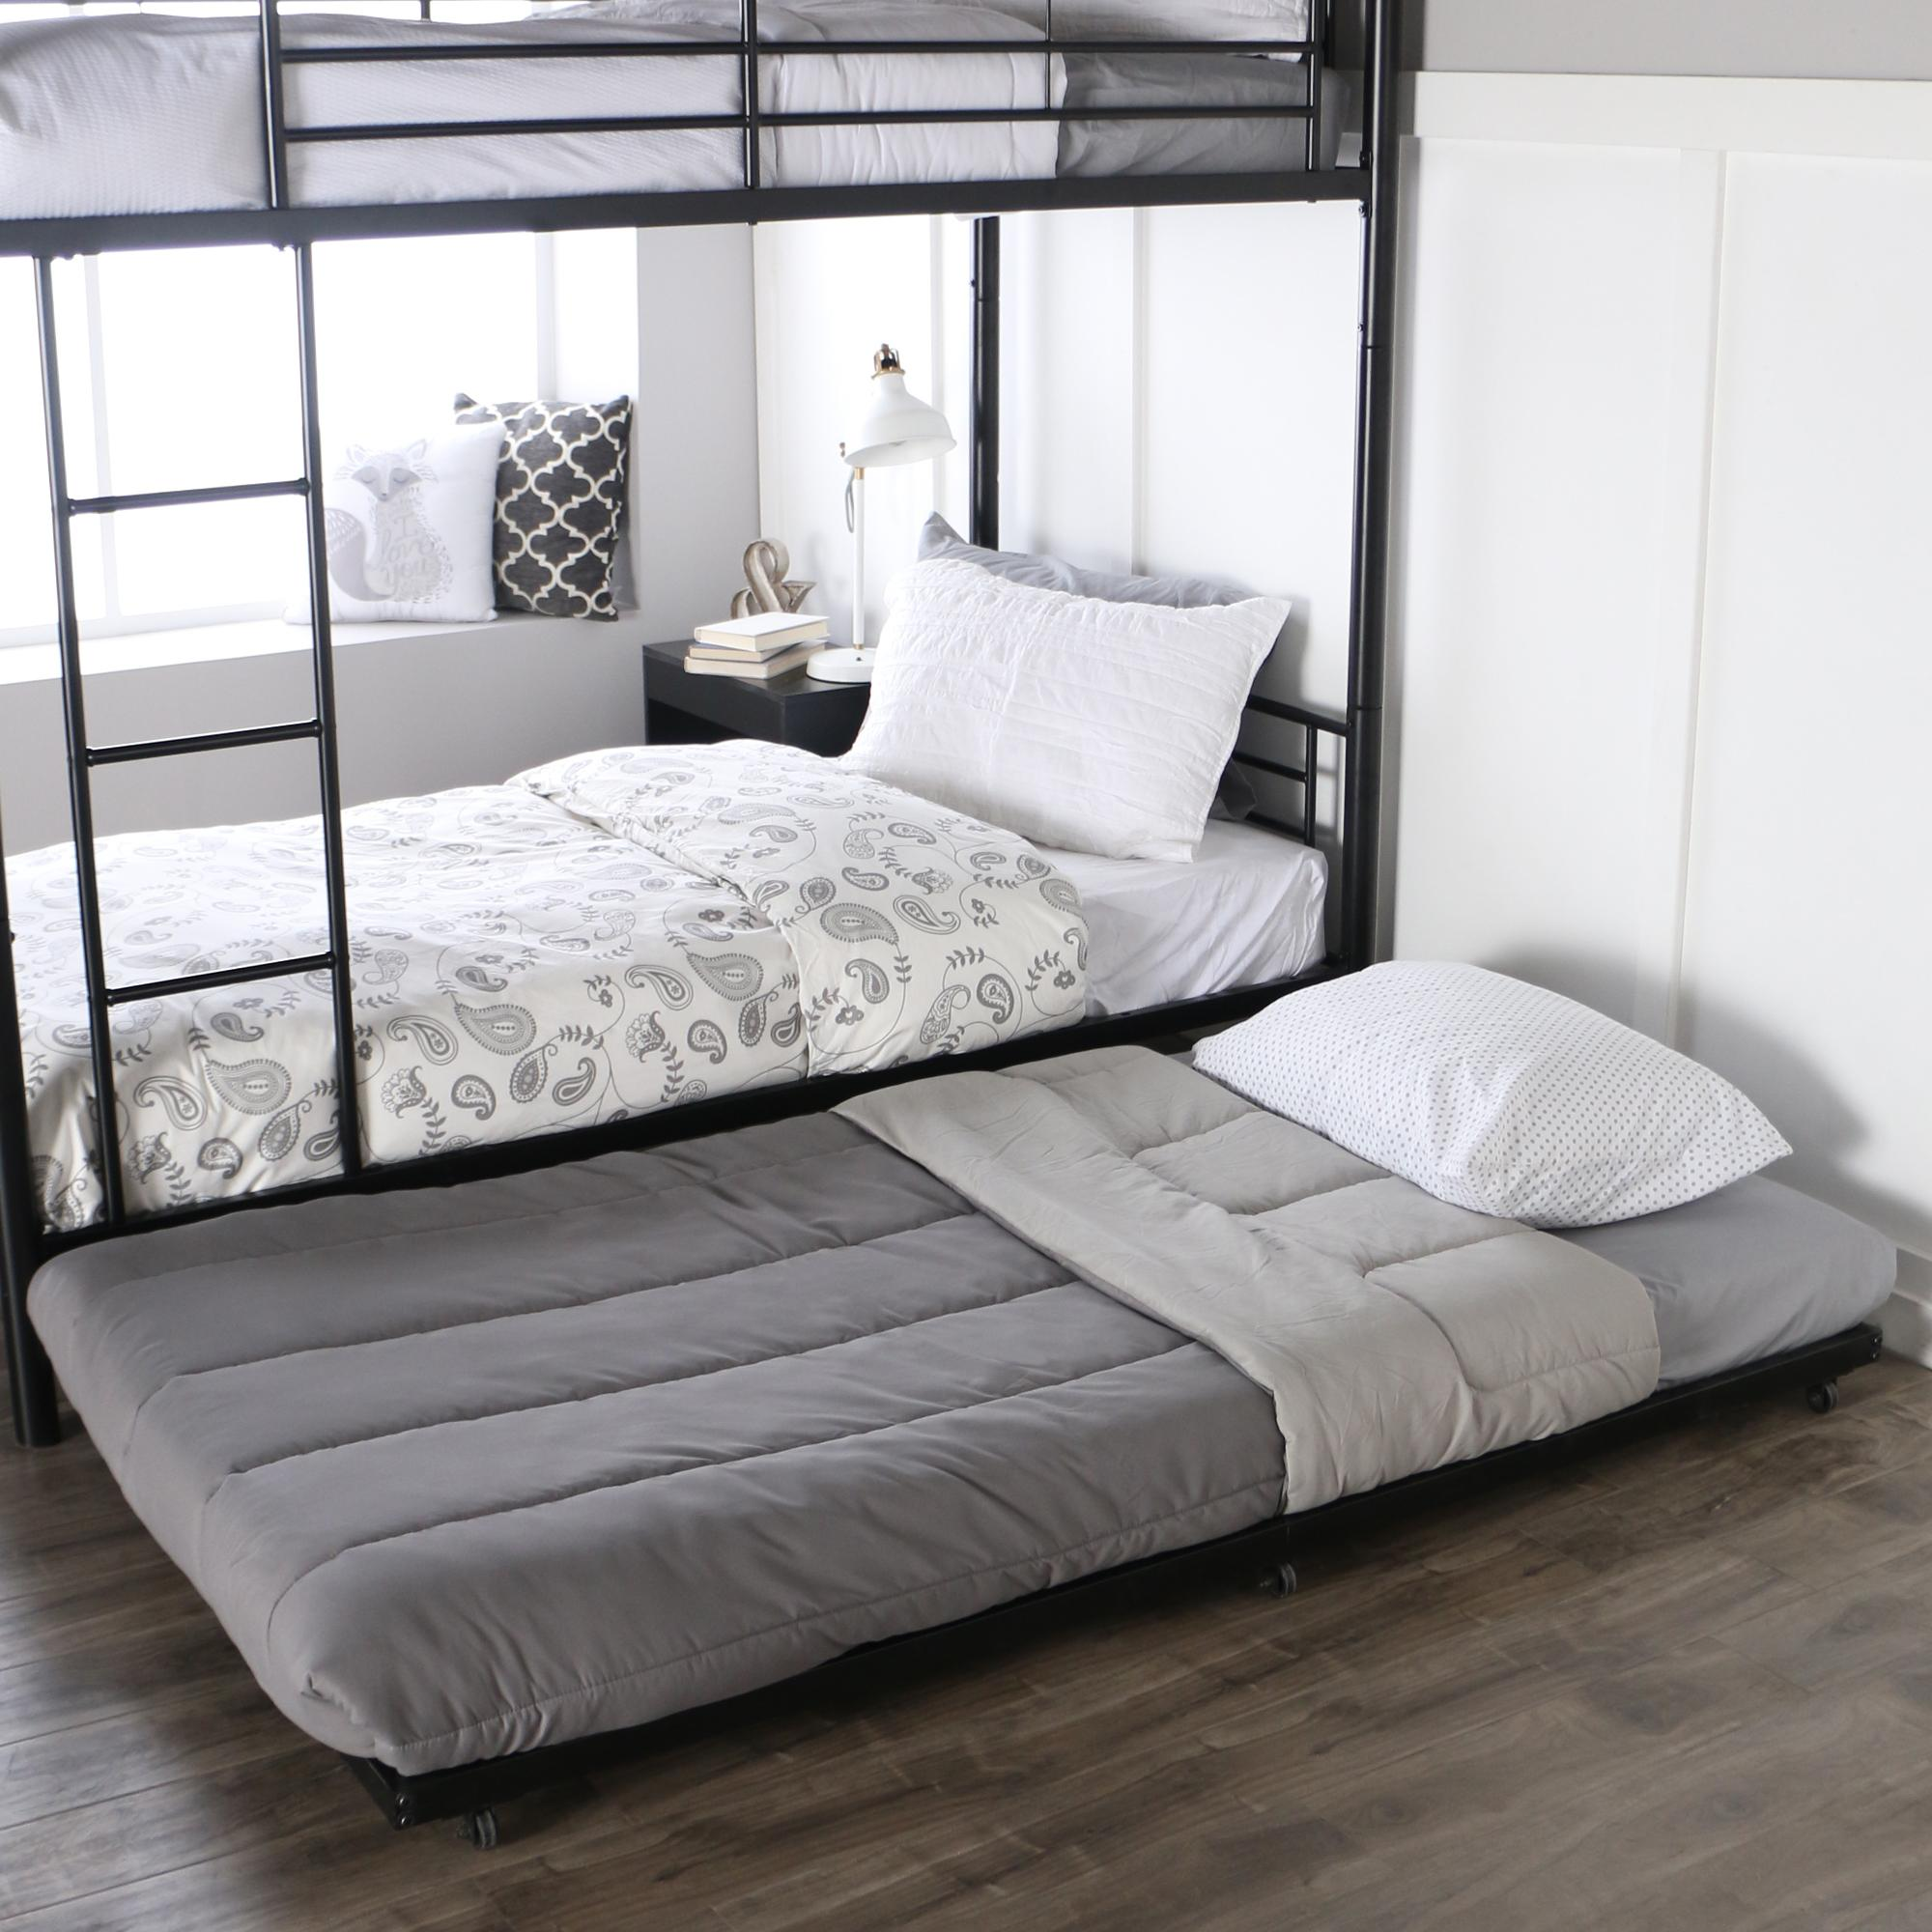 Trundle bed frame - View Larger